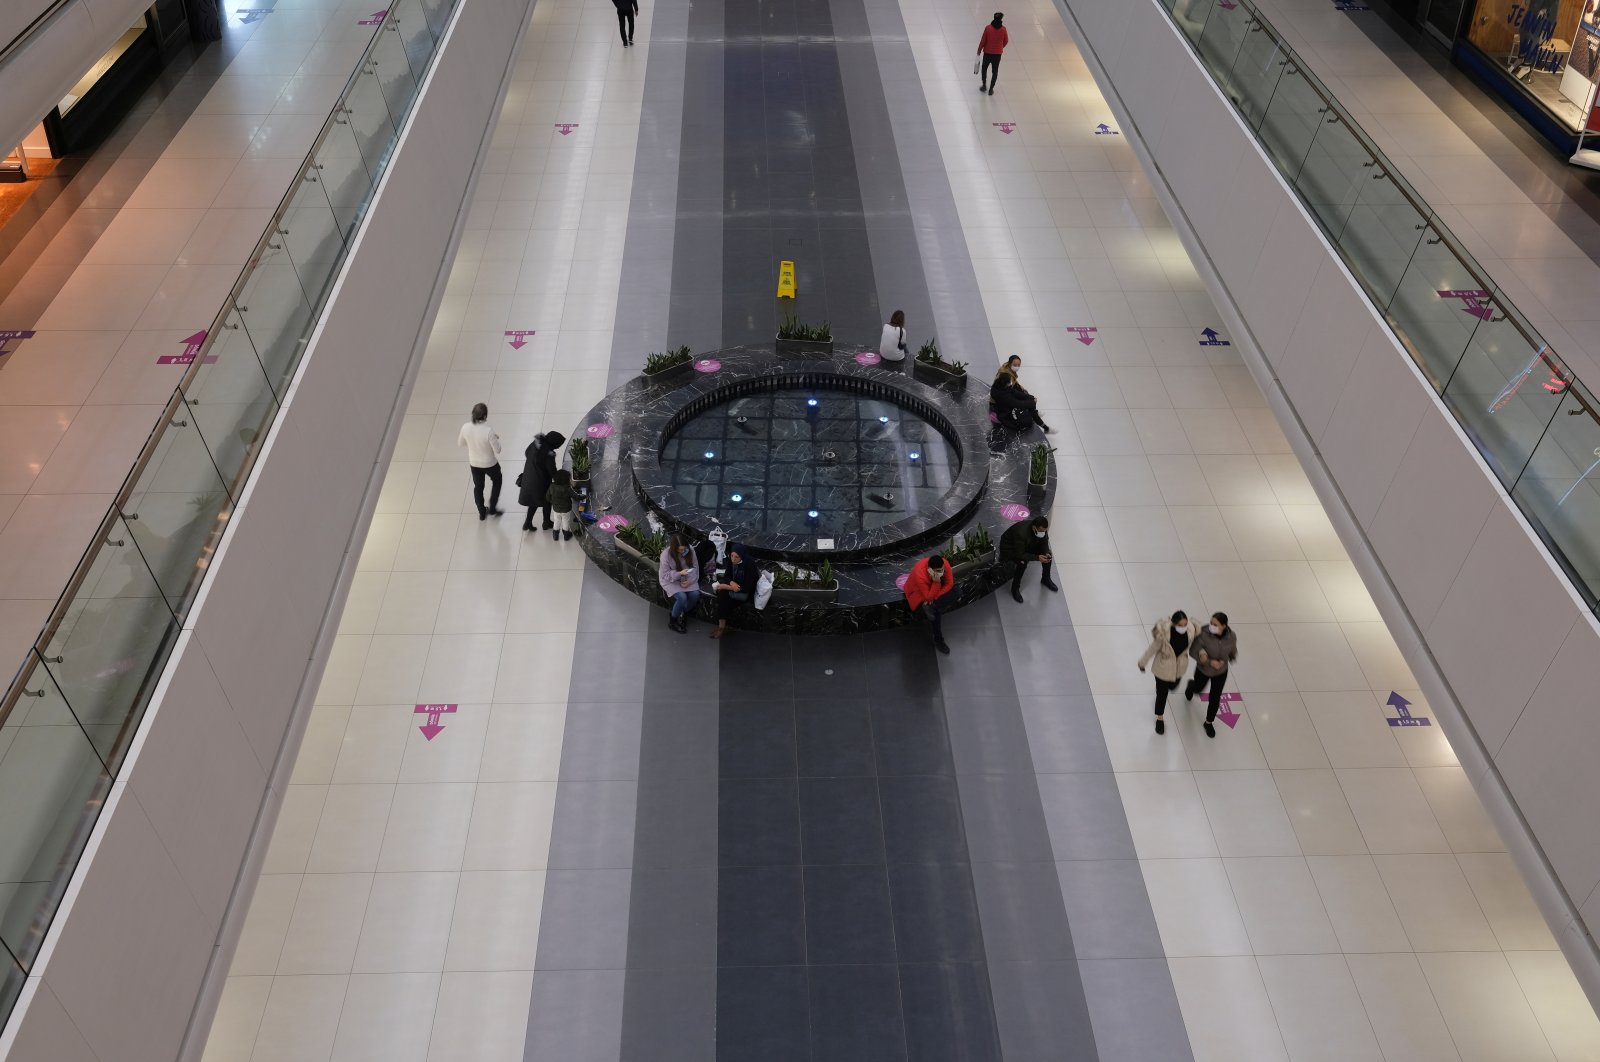 Direction and social distancing signs are seen on the floor at a shopping mall amid the coronavirus outbreak, in Istanbul, Turkey, Dec. 2, 2020. (Reuters Photo)